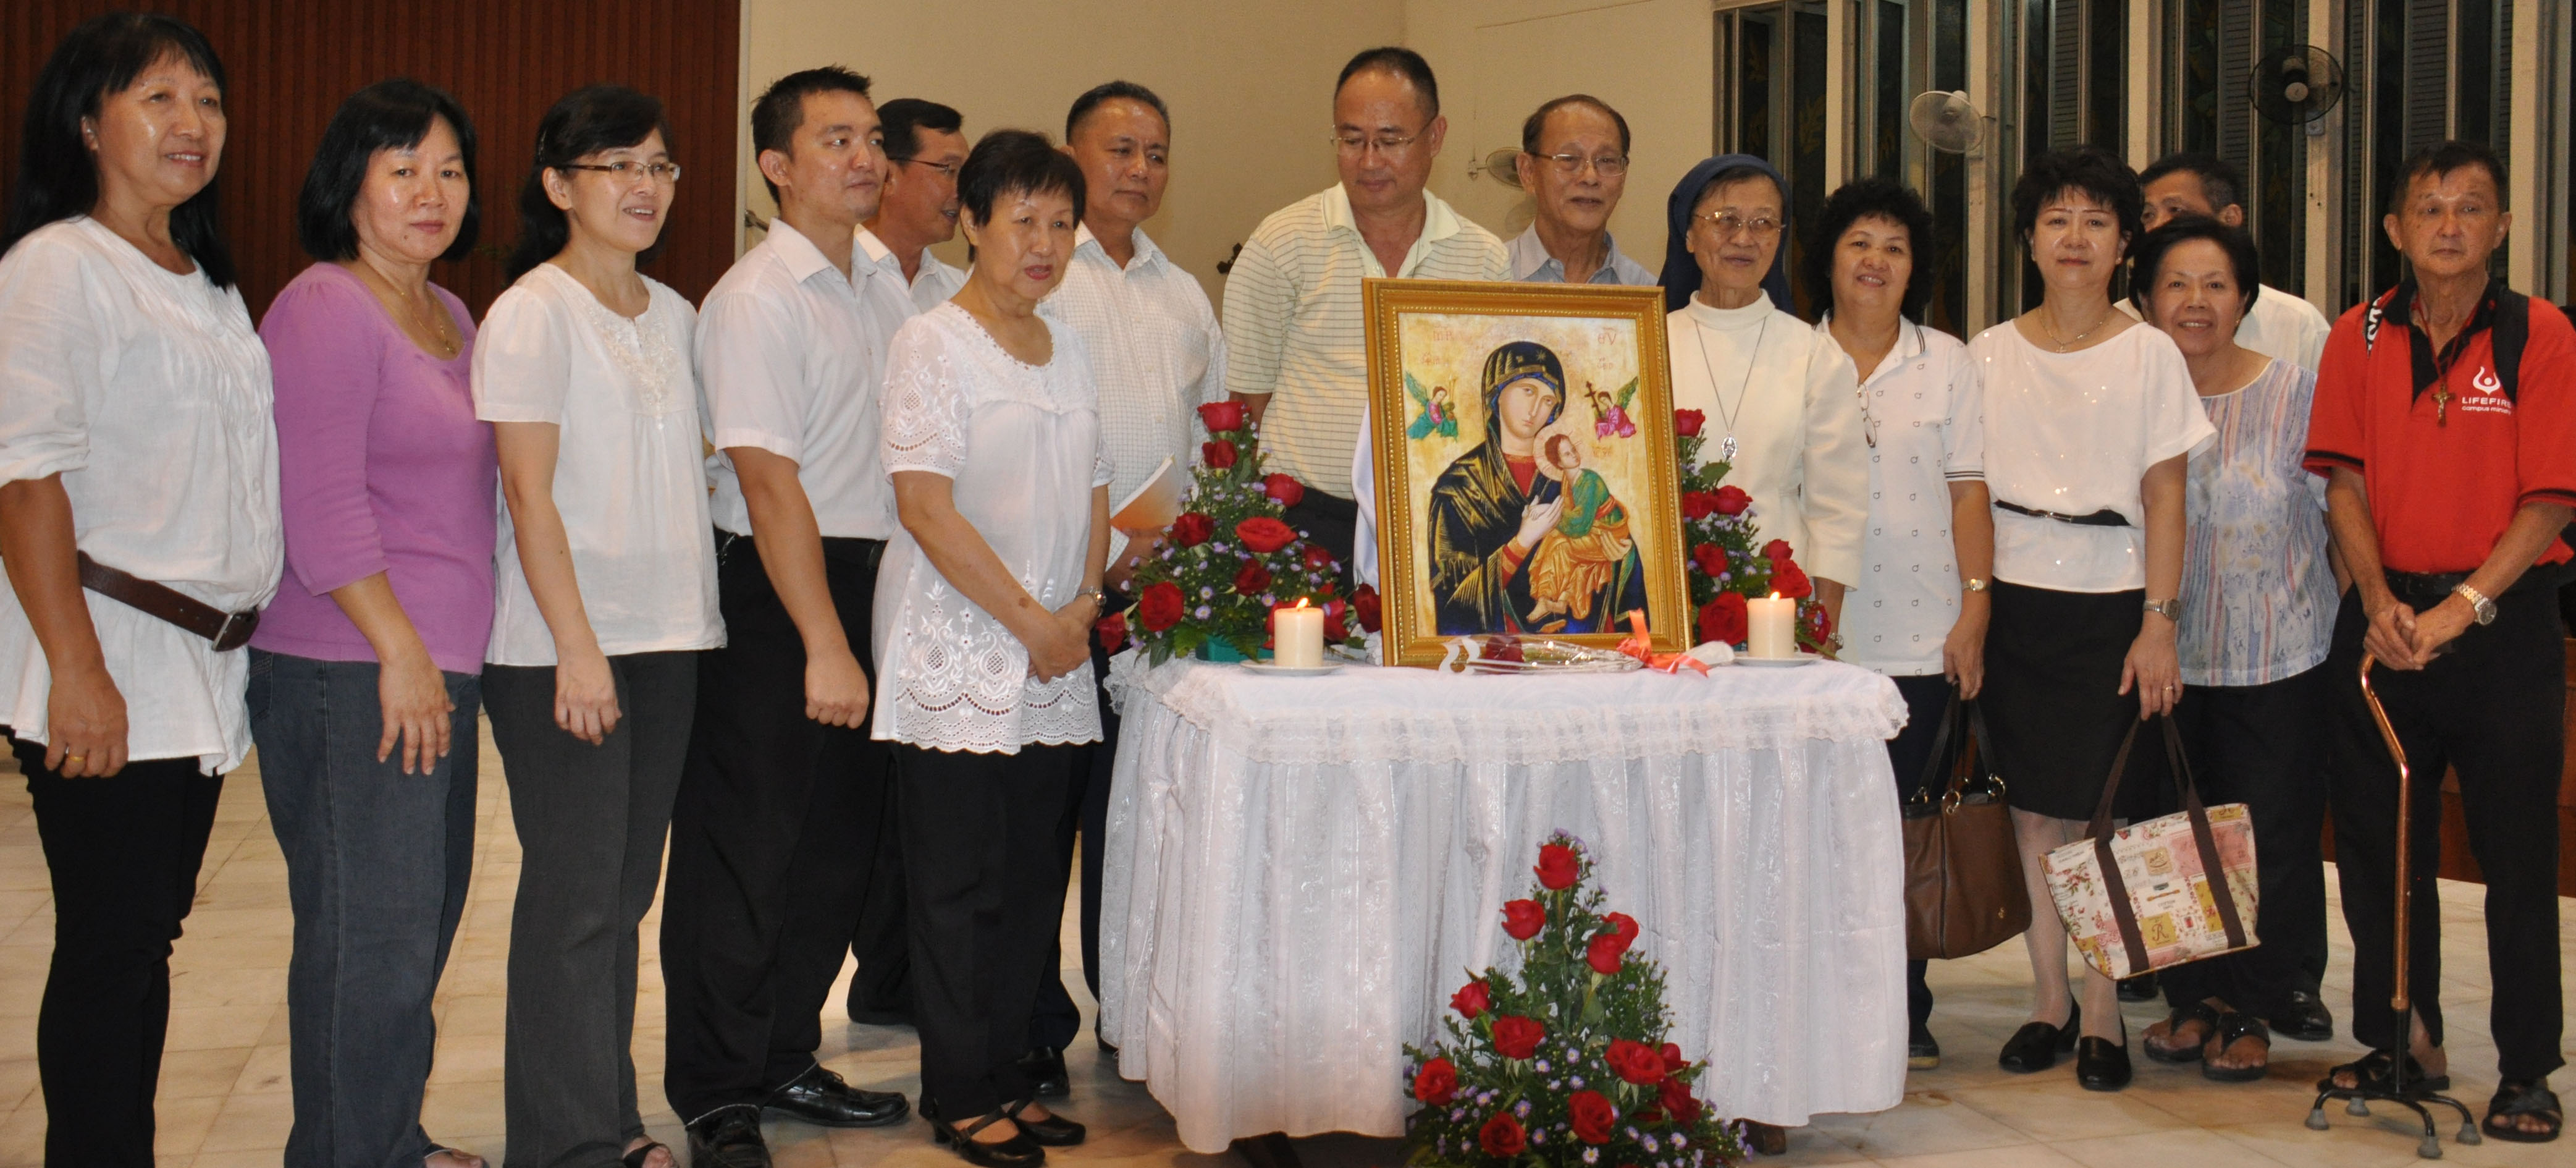 The organising team pose with the icon after the Mass.